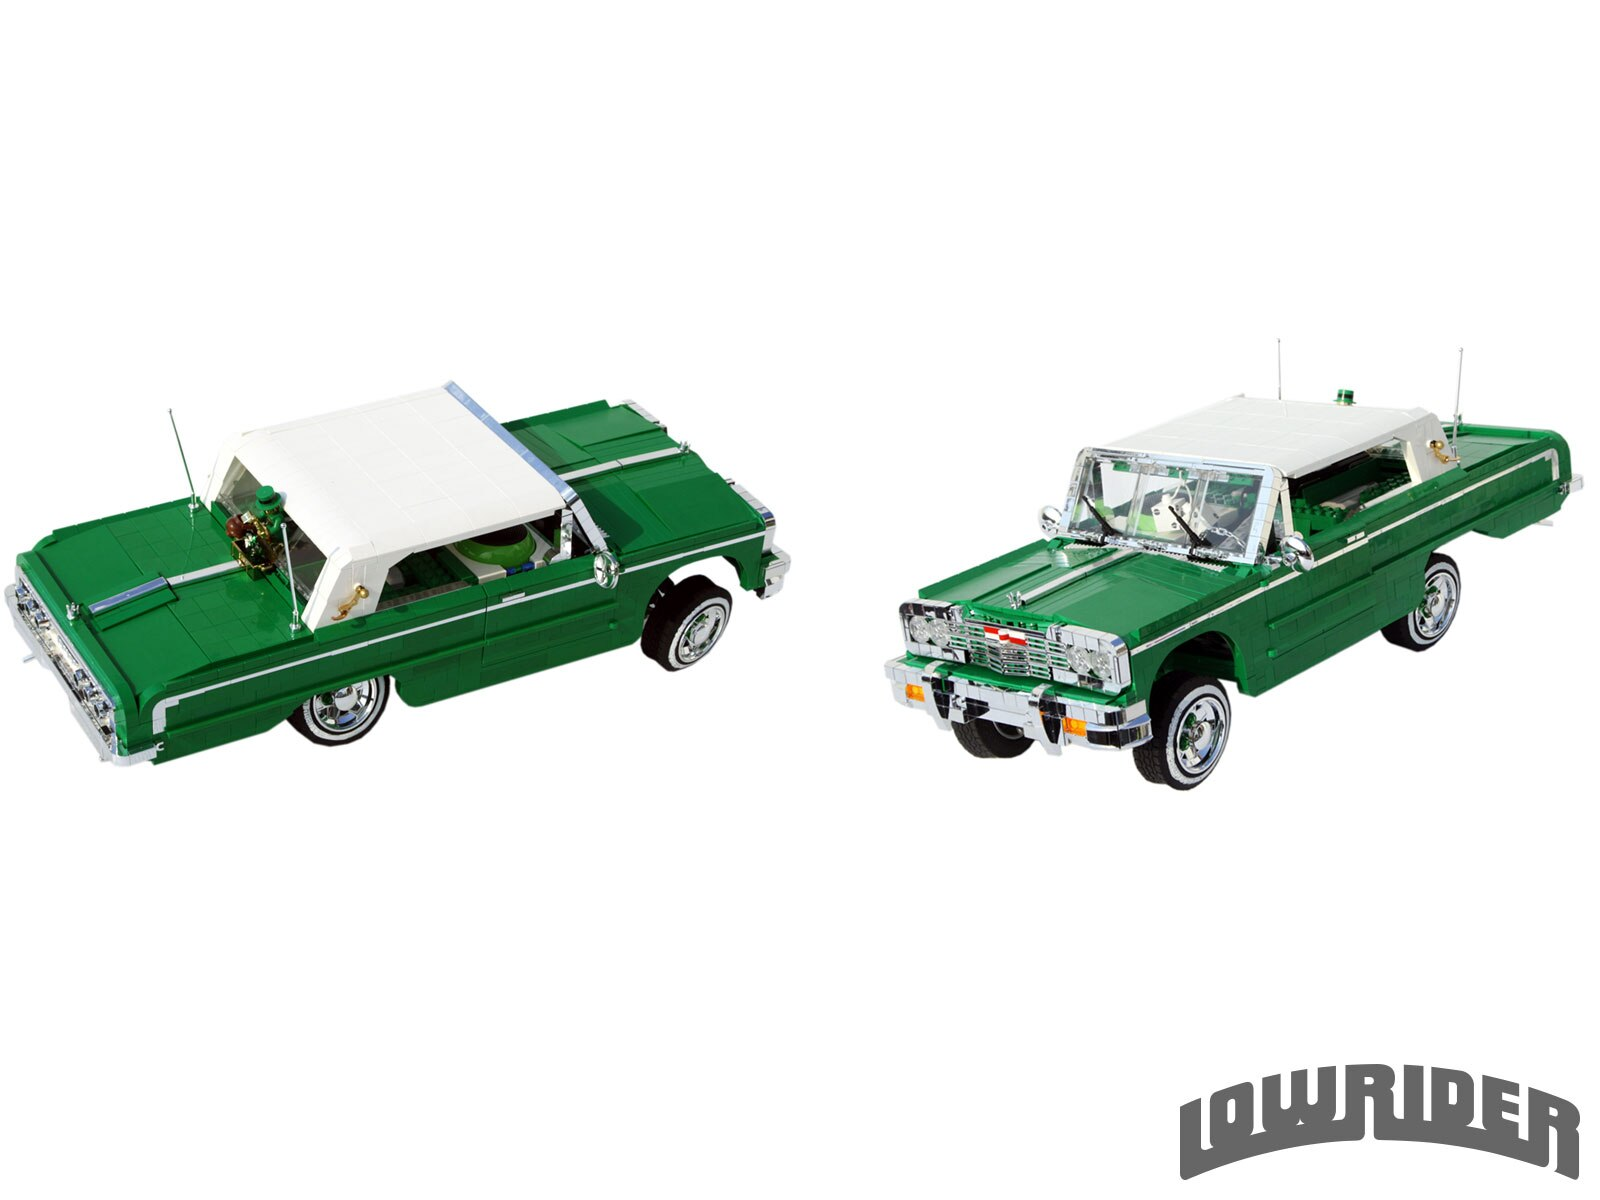 alex-jones-lowrider-legos-green1